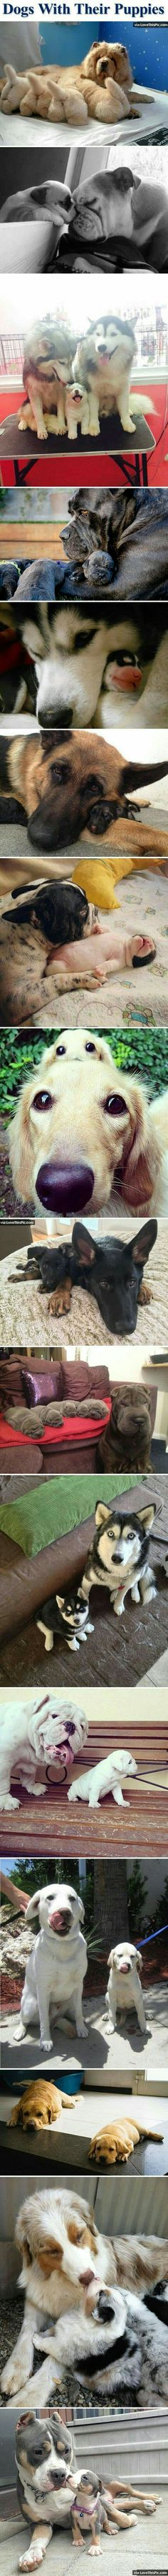 This looks amazing can't wait for my #dogs to make baby's #doglovers